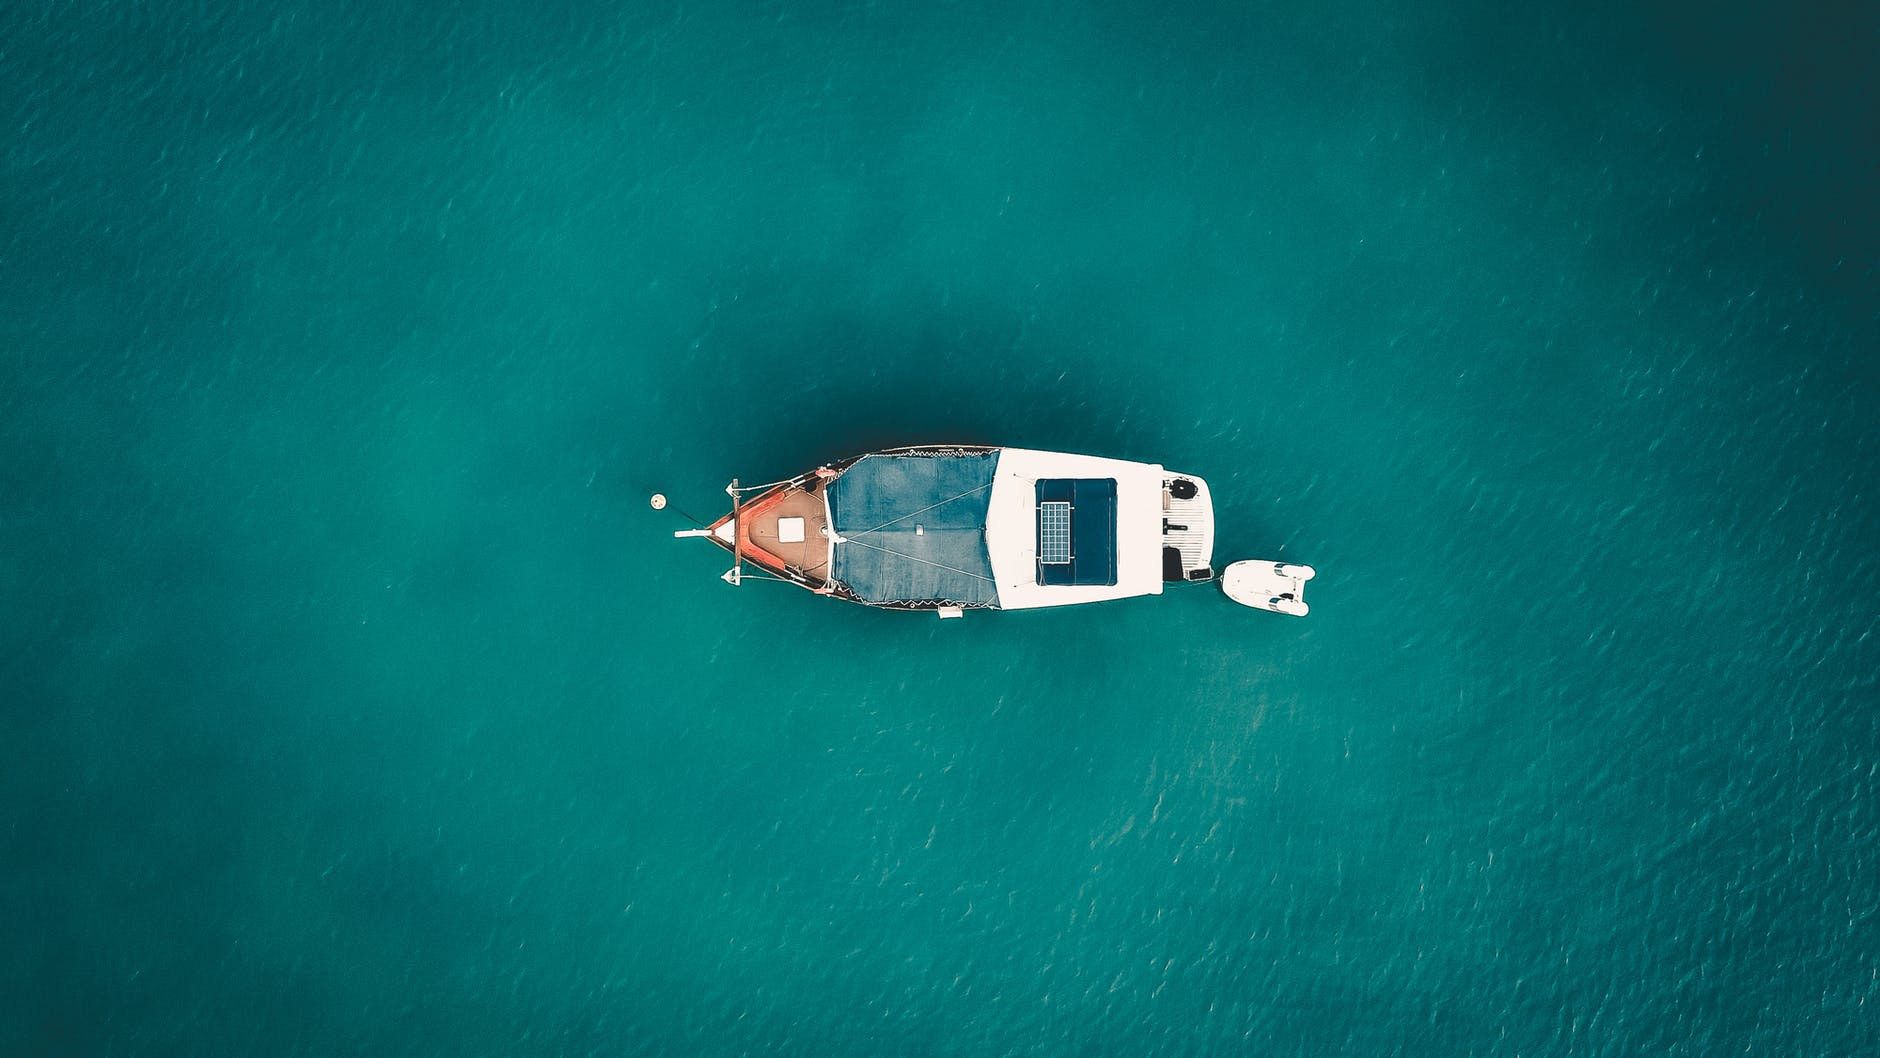 aerial view of a simple sport fishing boat